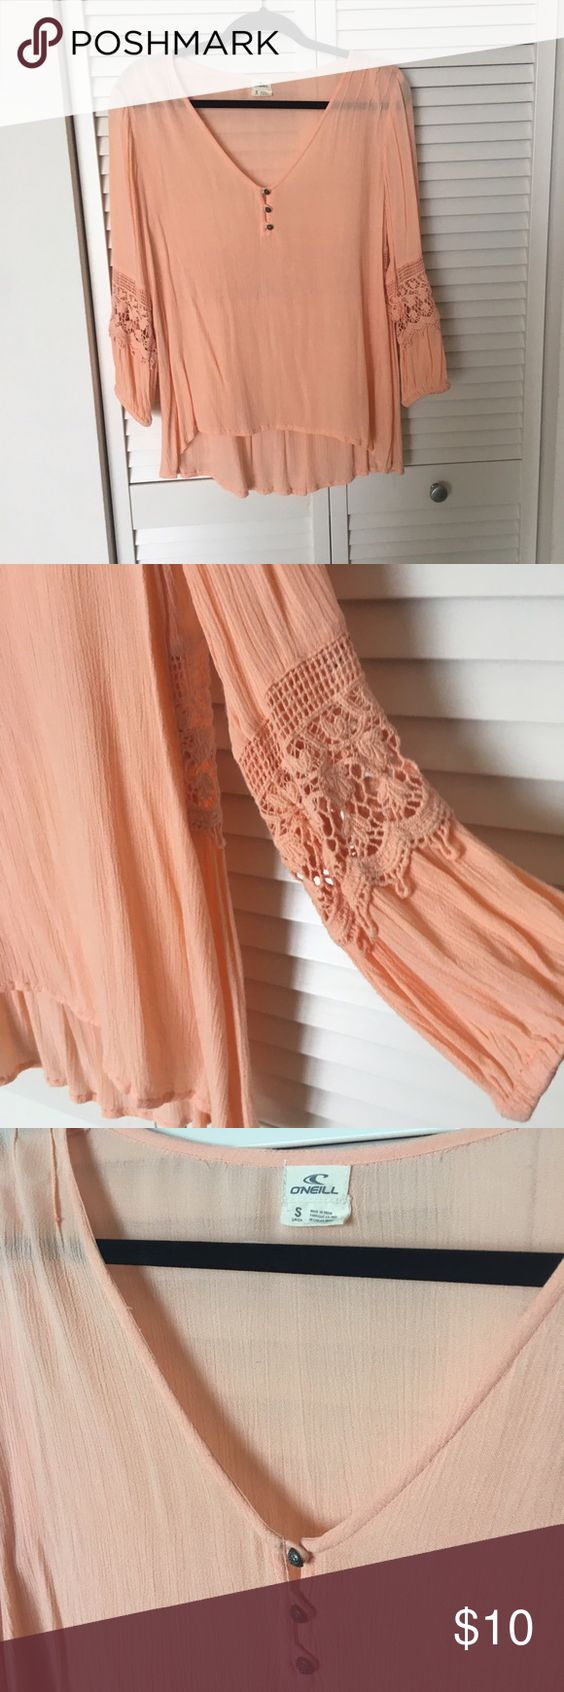 O'Neill Flowy Top Gently used. No stains, no holes. Always open to offers!!! The last photo shoes the same style Top, but a different color. O'Neill Tops